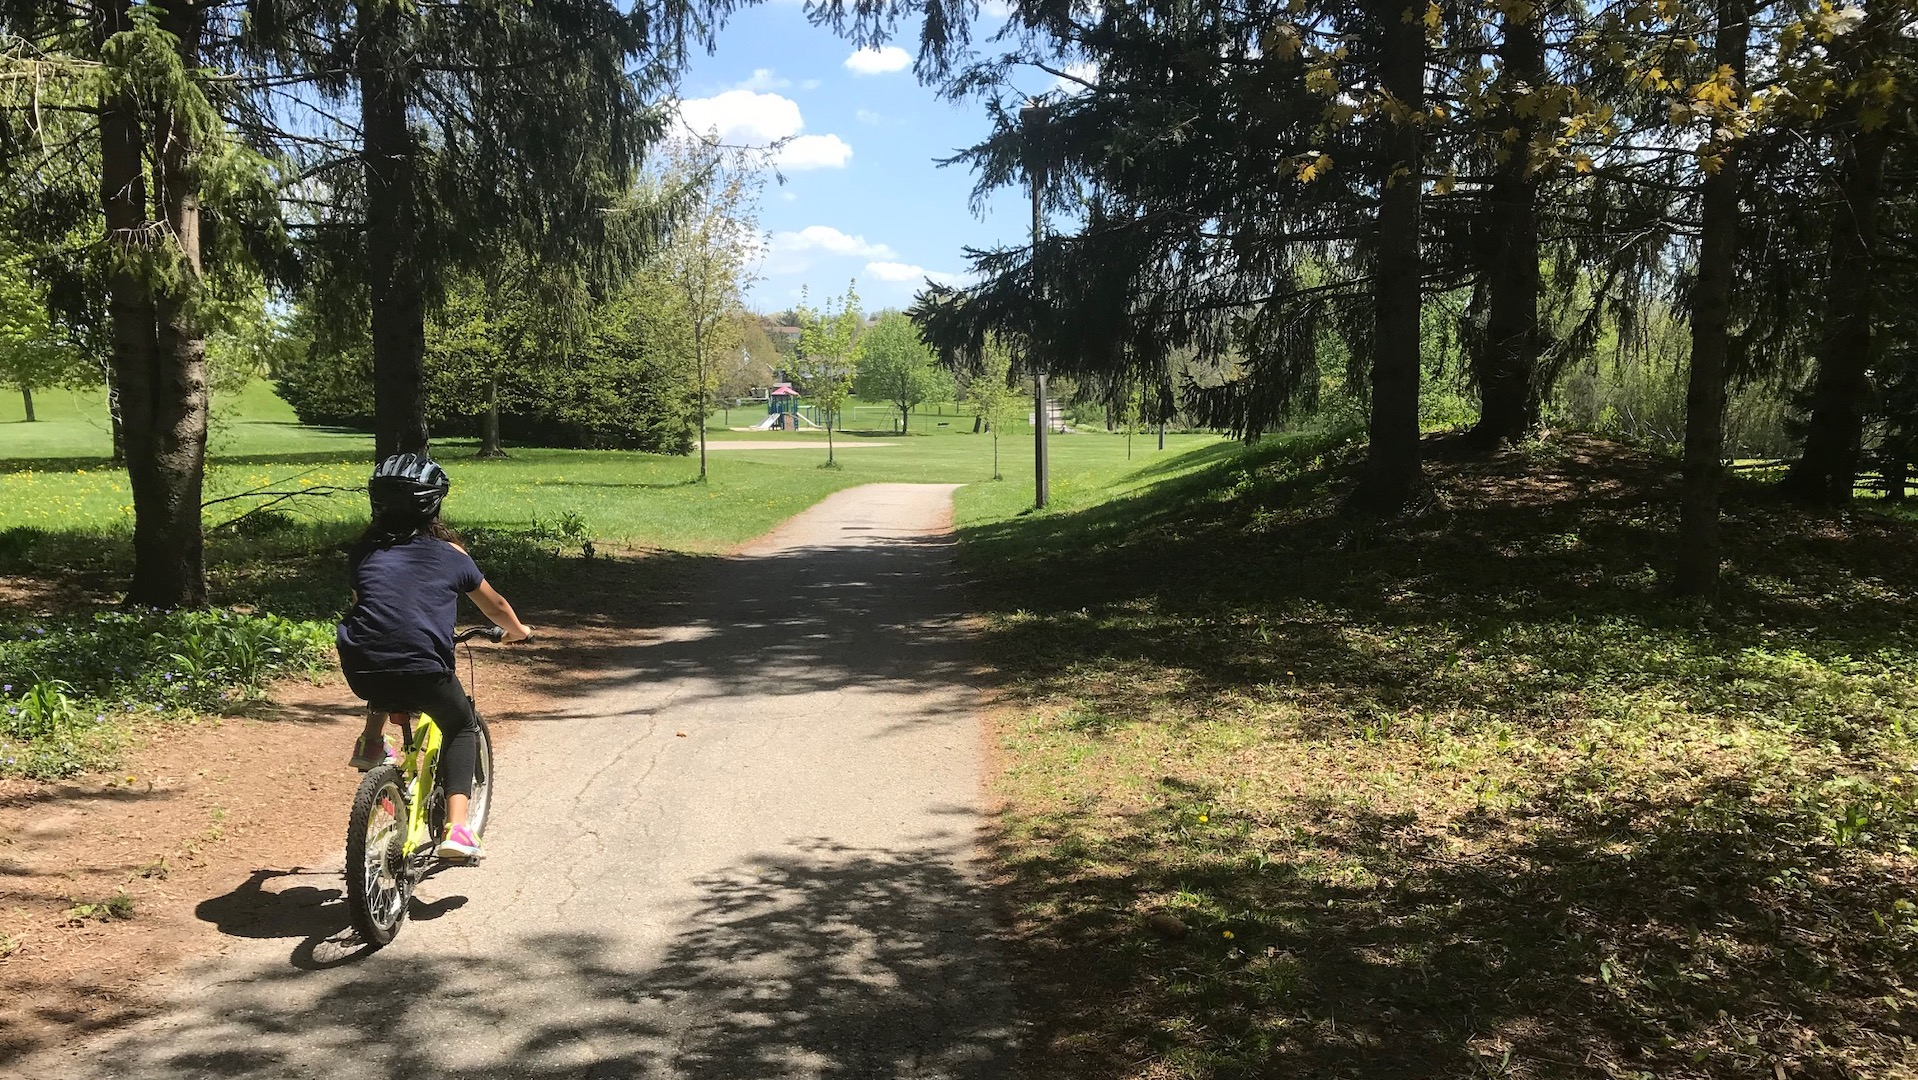 A child rides a bike on a multi use trail in Kitchener, Ontario.